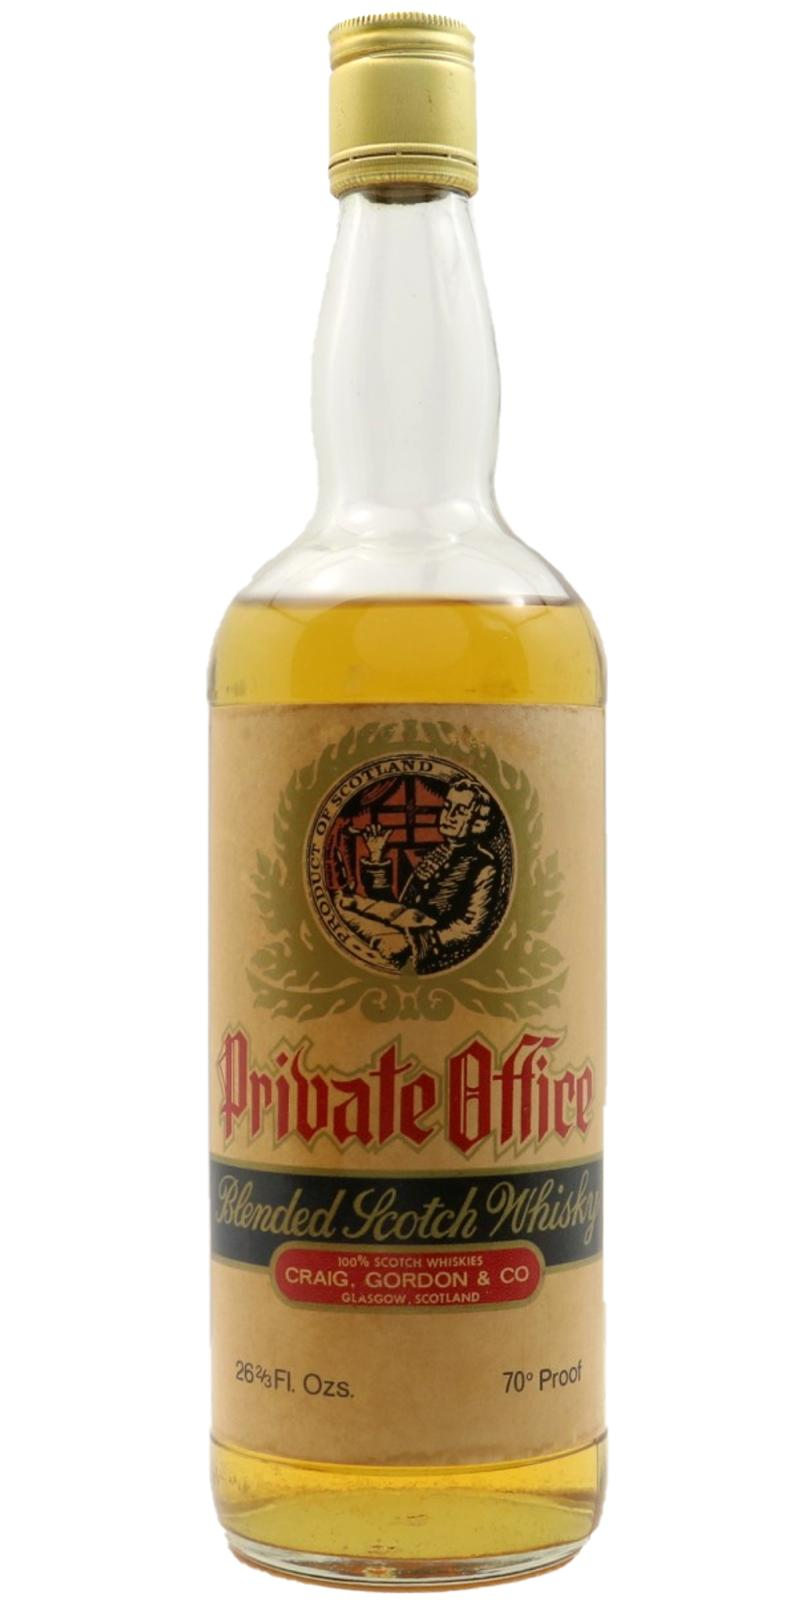 Private Office Blended Scotch Whisky